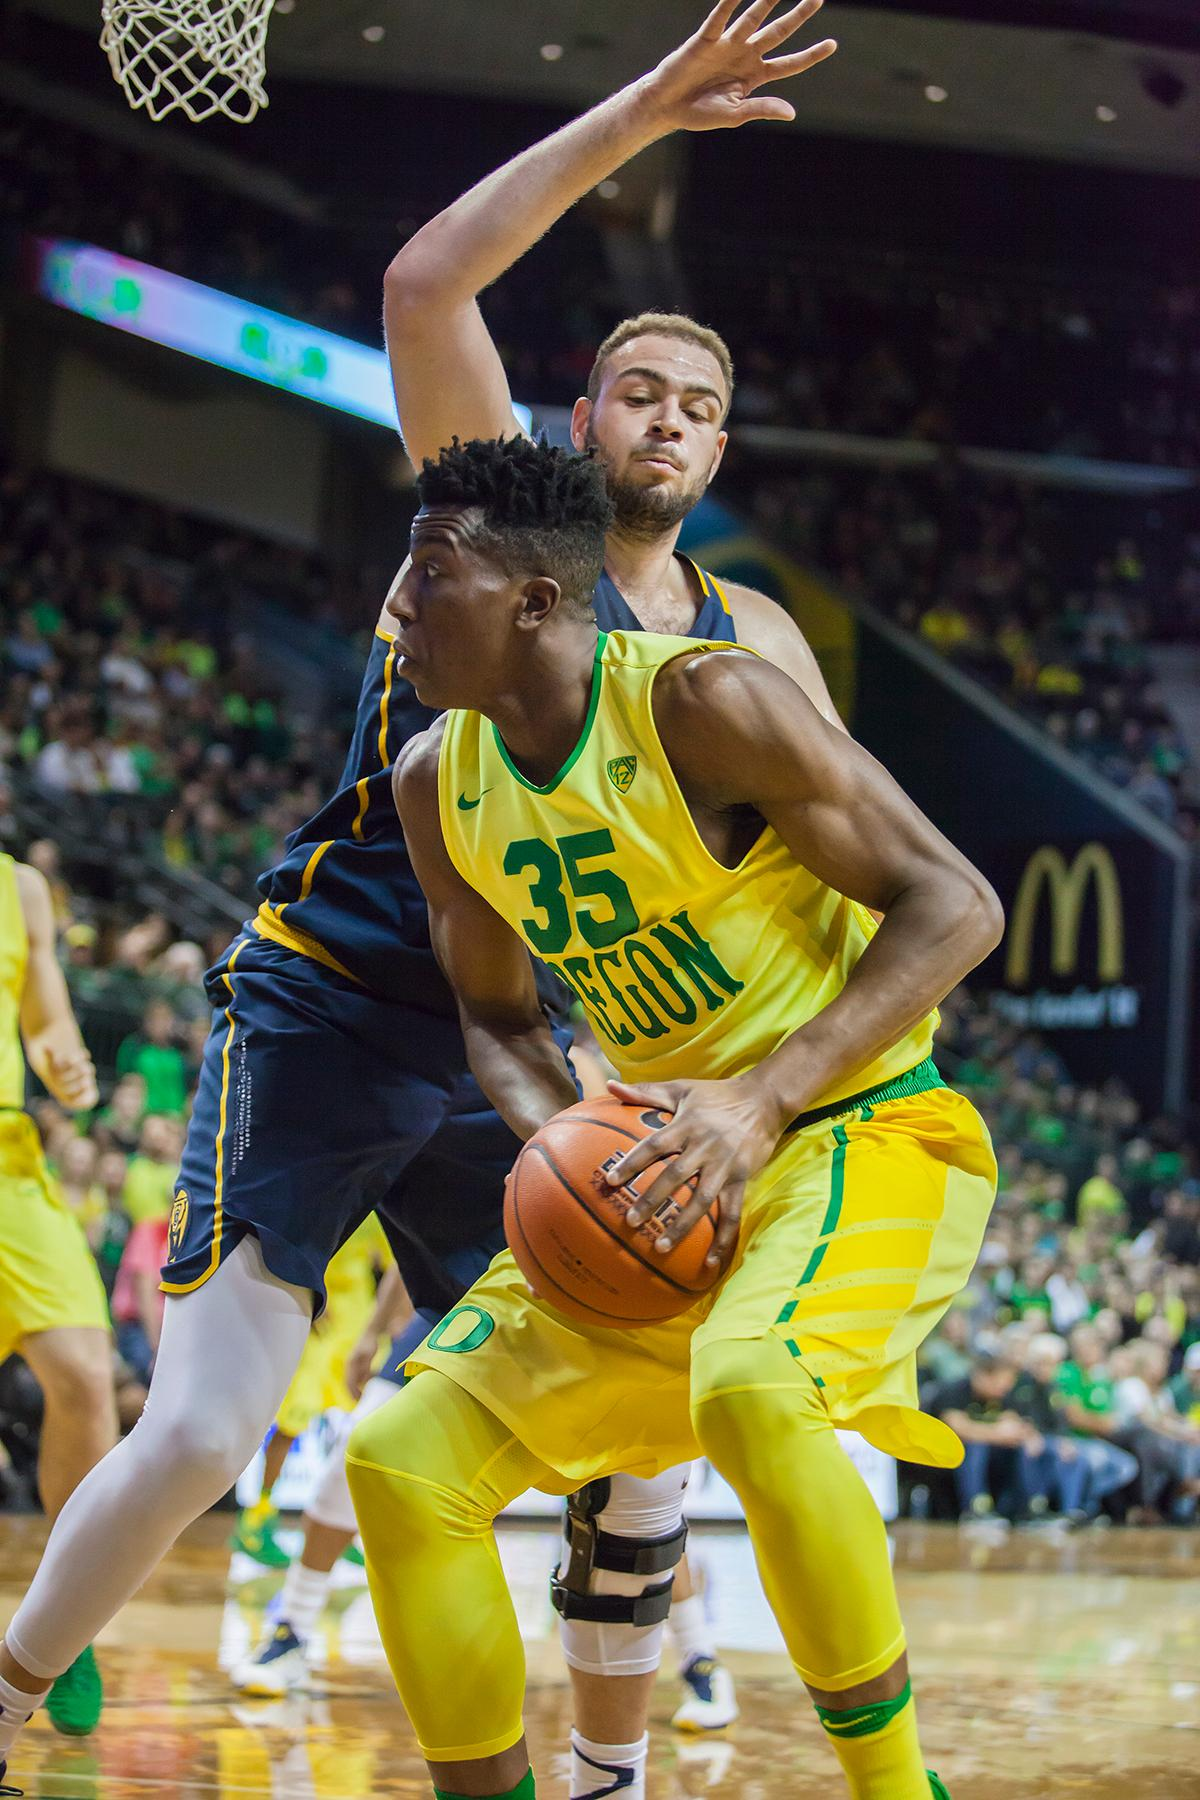 Oregon forward Kavell Bigby-Williams (#35) looks past California center Kameron Rooks (#44) for an unguarded teammate. The Oregon Ducks defeated the California Golden Bears 86 to 63. Photo by Ben Lonergan, Oregon News Lab